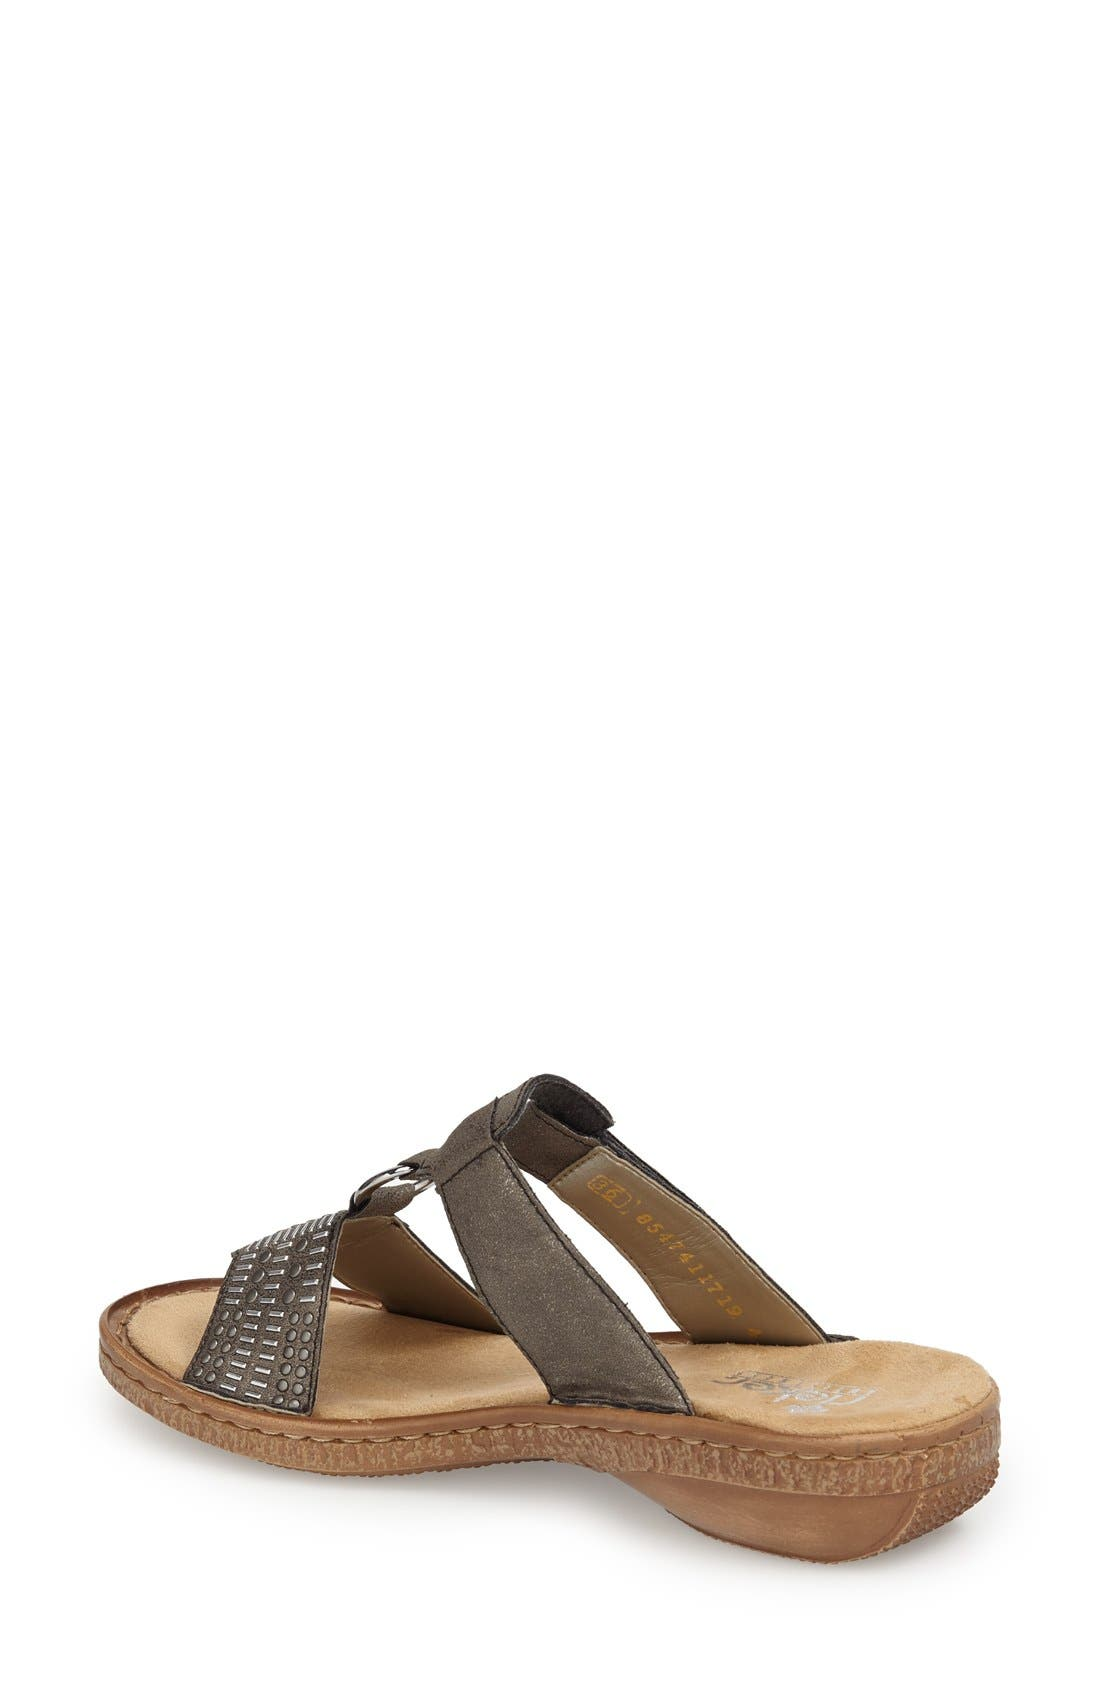 Alternate Image 2  - Rieker Antistress 'Regina' Slide Sandal (Women)